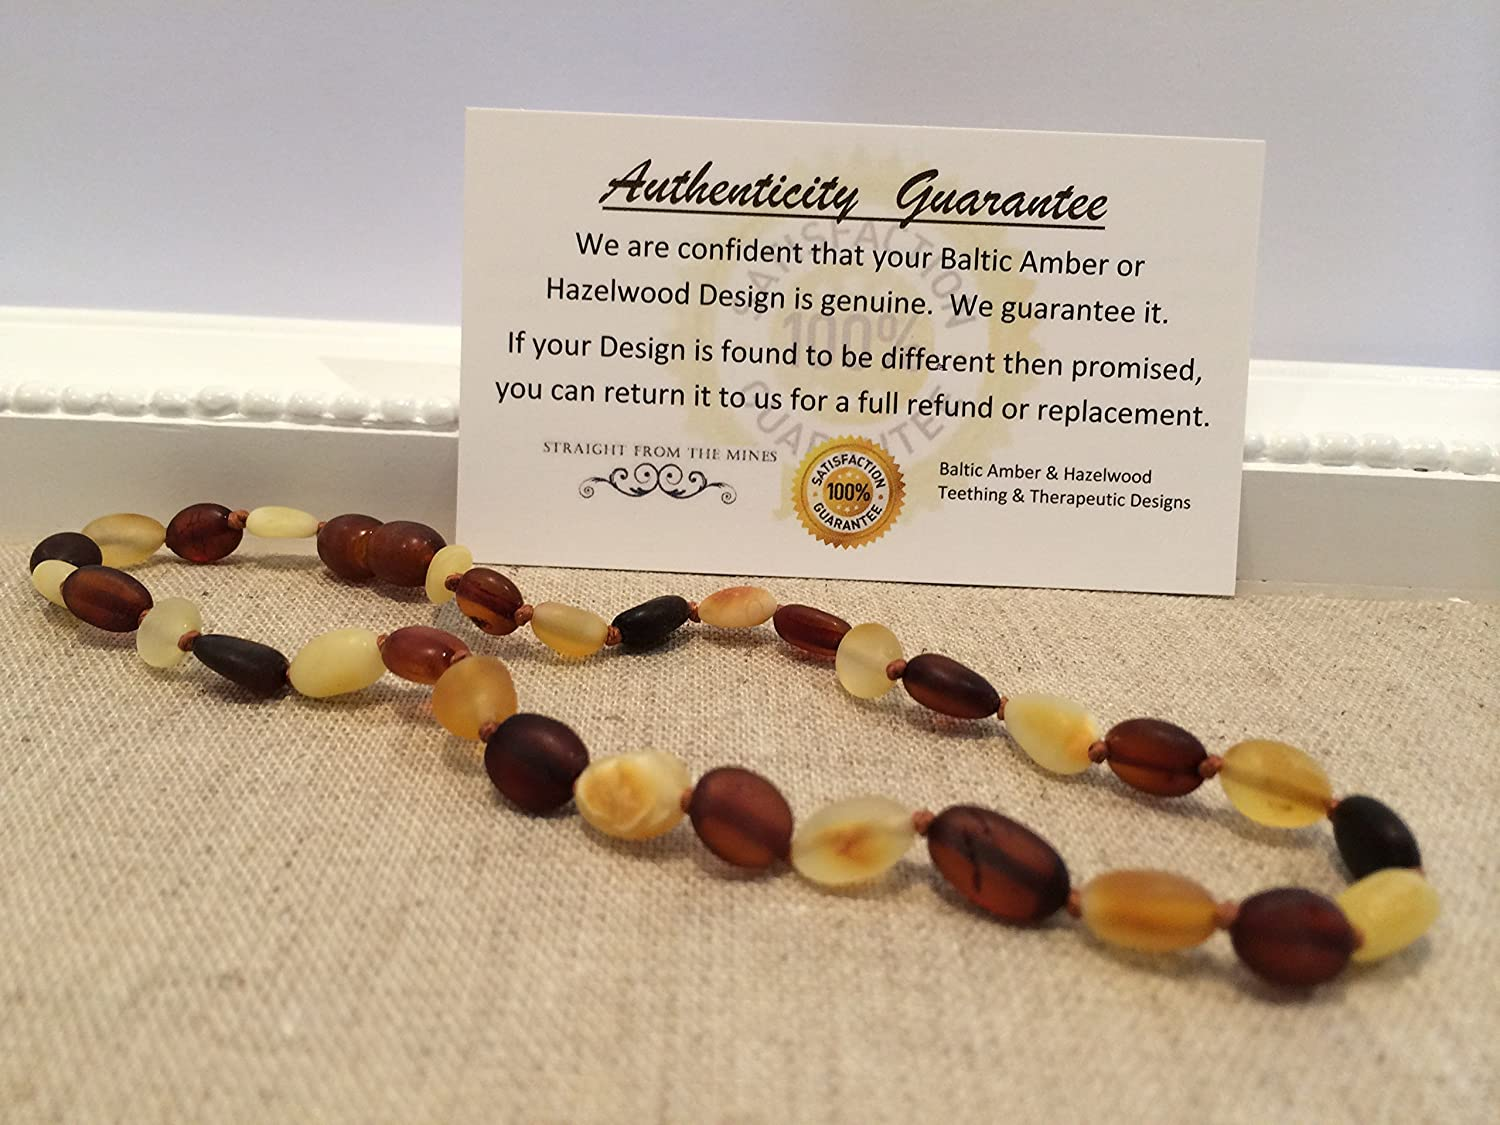 Baltic Amber Teething Necklace for Babies (Unisex) - Anti Flammatory, Drooling & Teething Pain Reduce Properties - Certificated Natural Oval Baltic Jewelry with the Highest Quality Guaranteed. Easy to Fastens with a Twist-in Screw Clasp Mothers Approved Remedies! Multi Milk Cognac Cherry Lemon Brown Black Yellow White Honey Raw Maximum Effective by Baltic Essentials   B00TO1NM3S